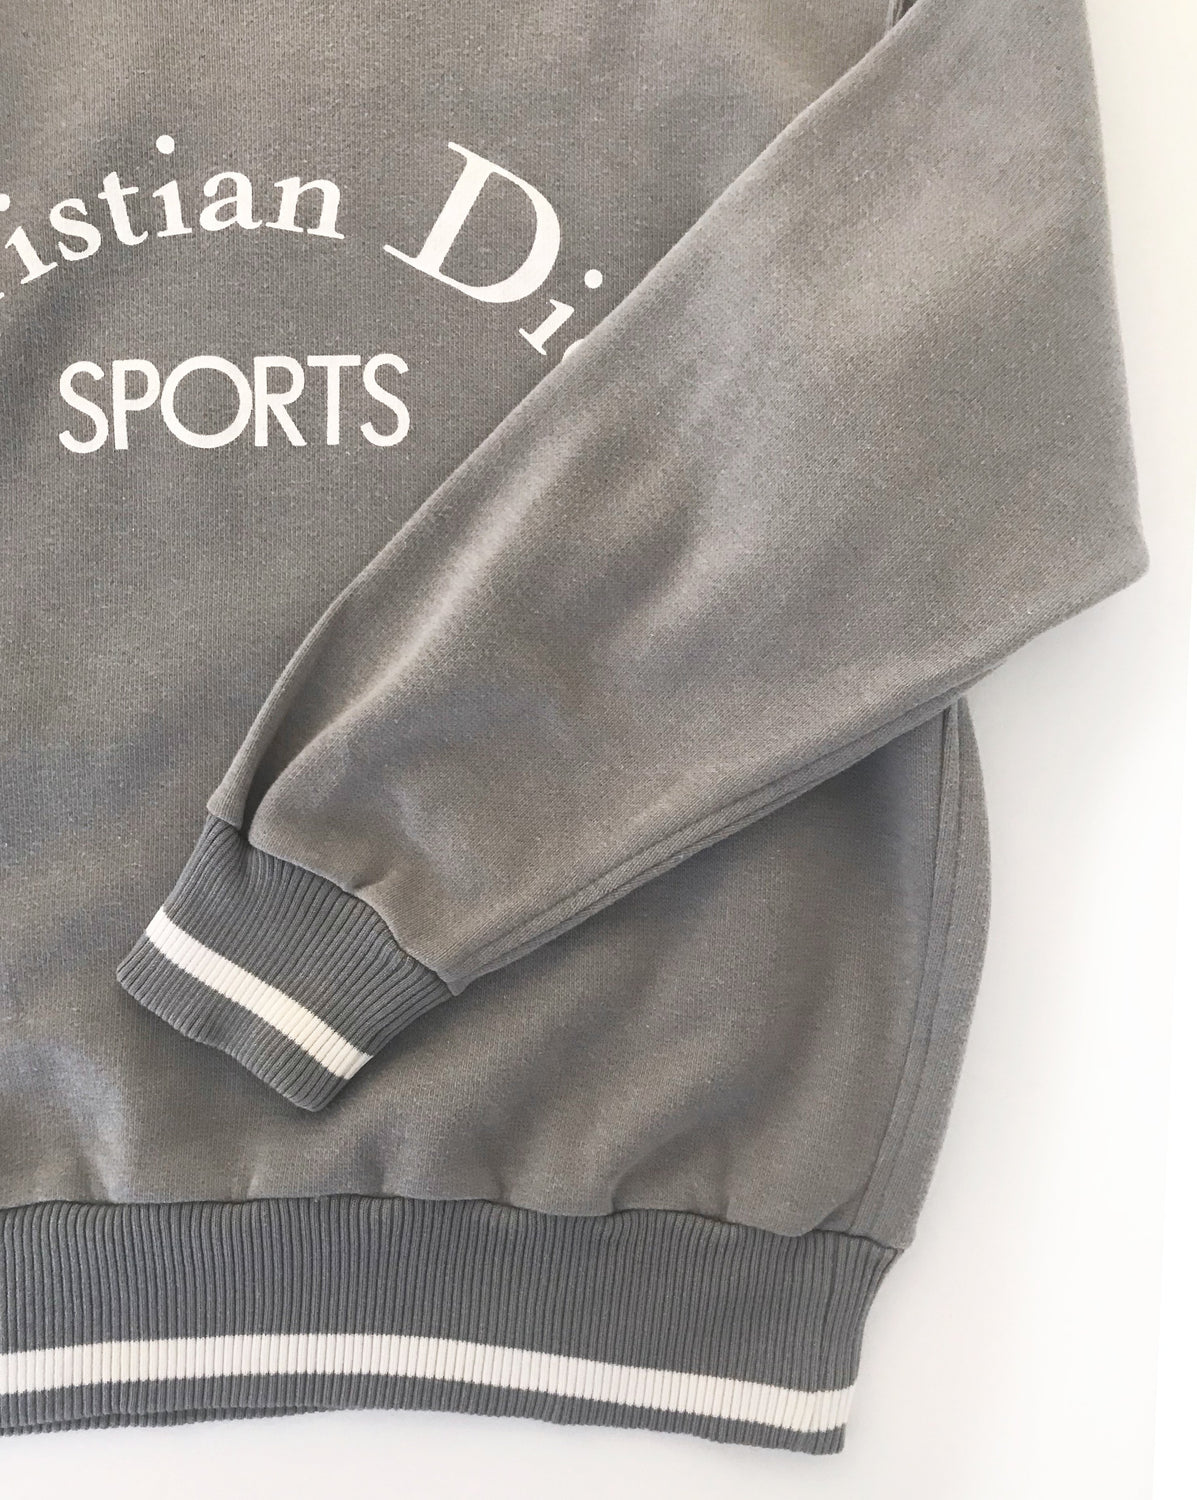 Fruit Vintage Christian Dior Sport Grey 1980s Logo sweat shirt. It features a large printed logo design at front and classic sweat shirt cut.